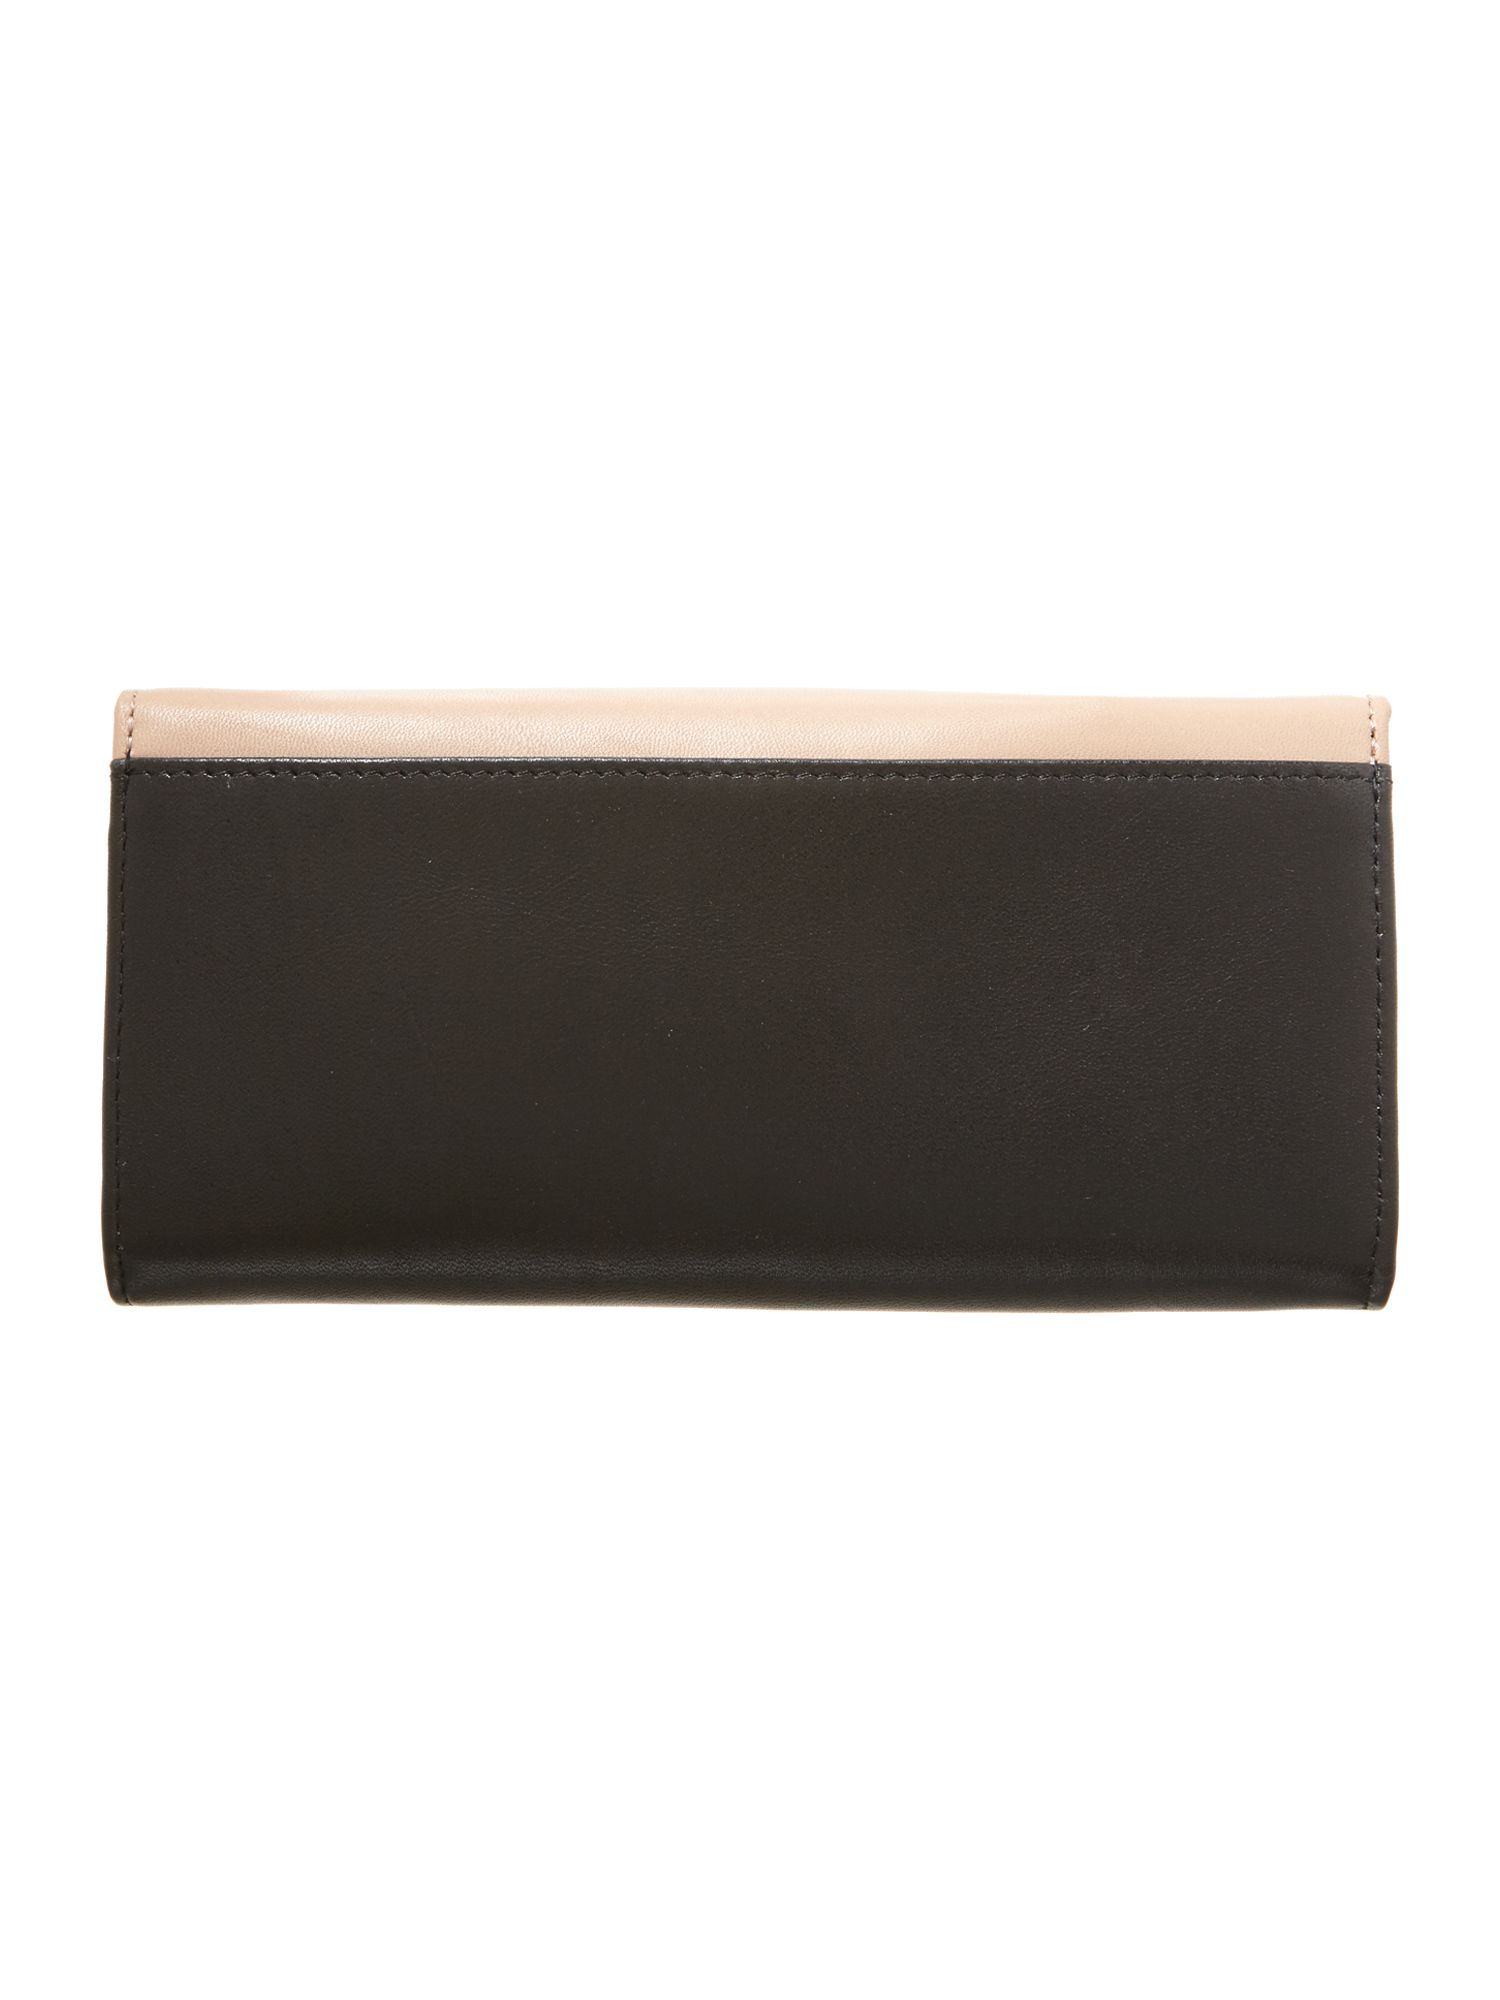 Black and Cream flapover purse